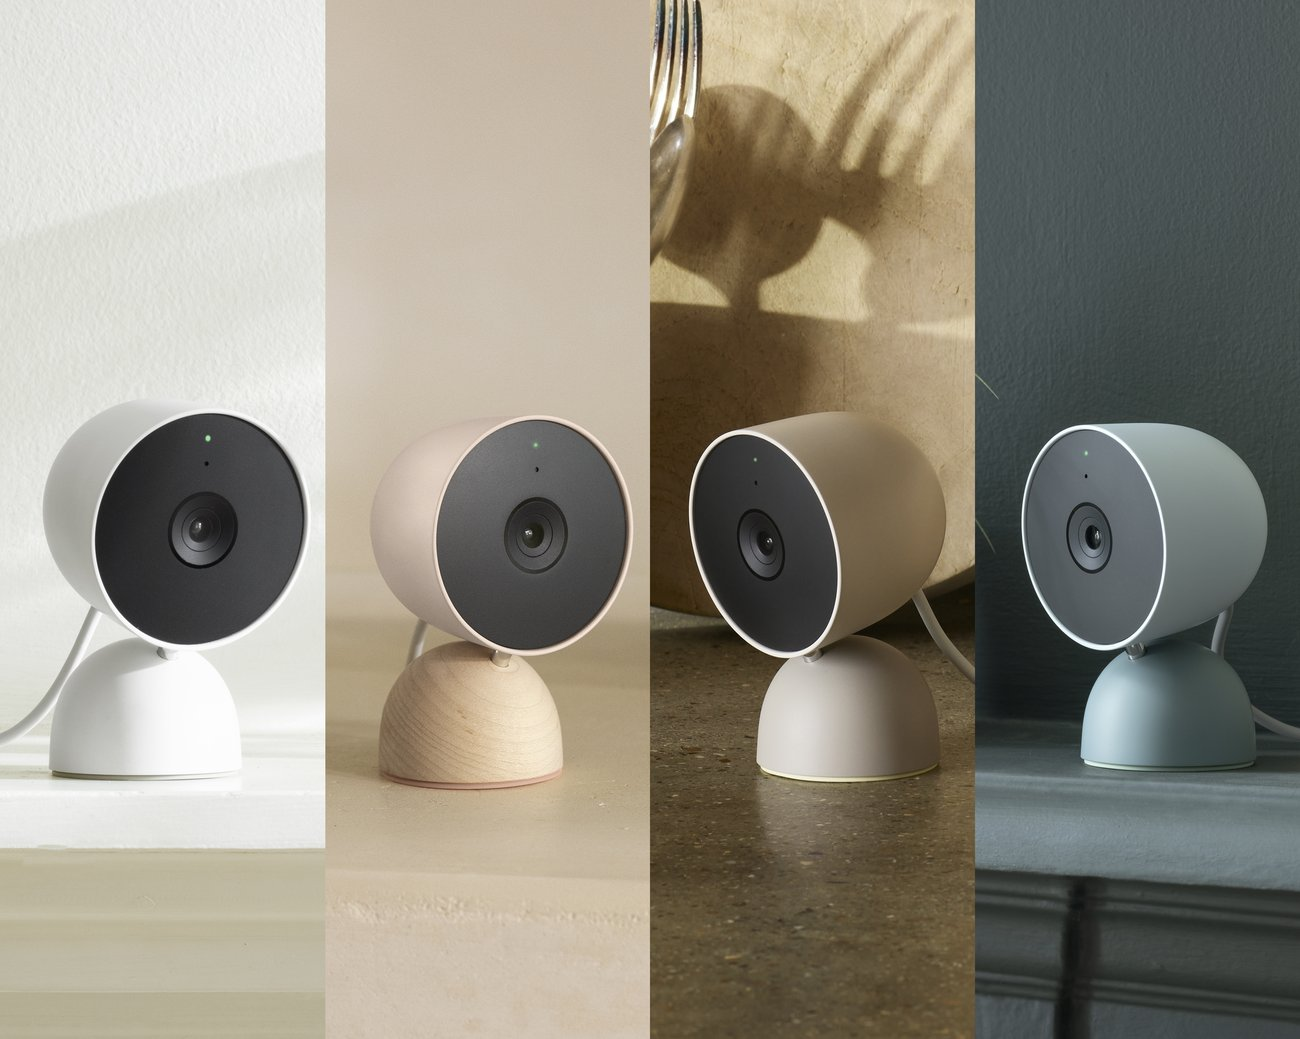 The new indoor, wired Nest Cam is available today